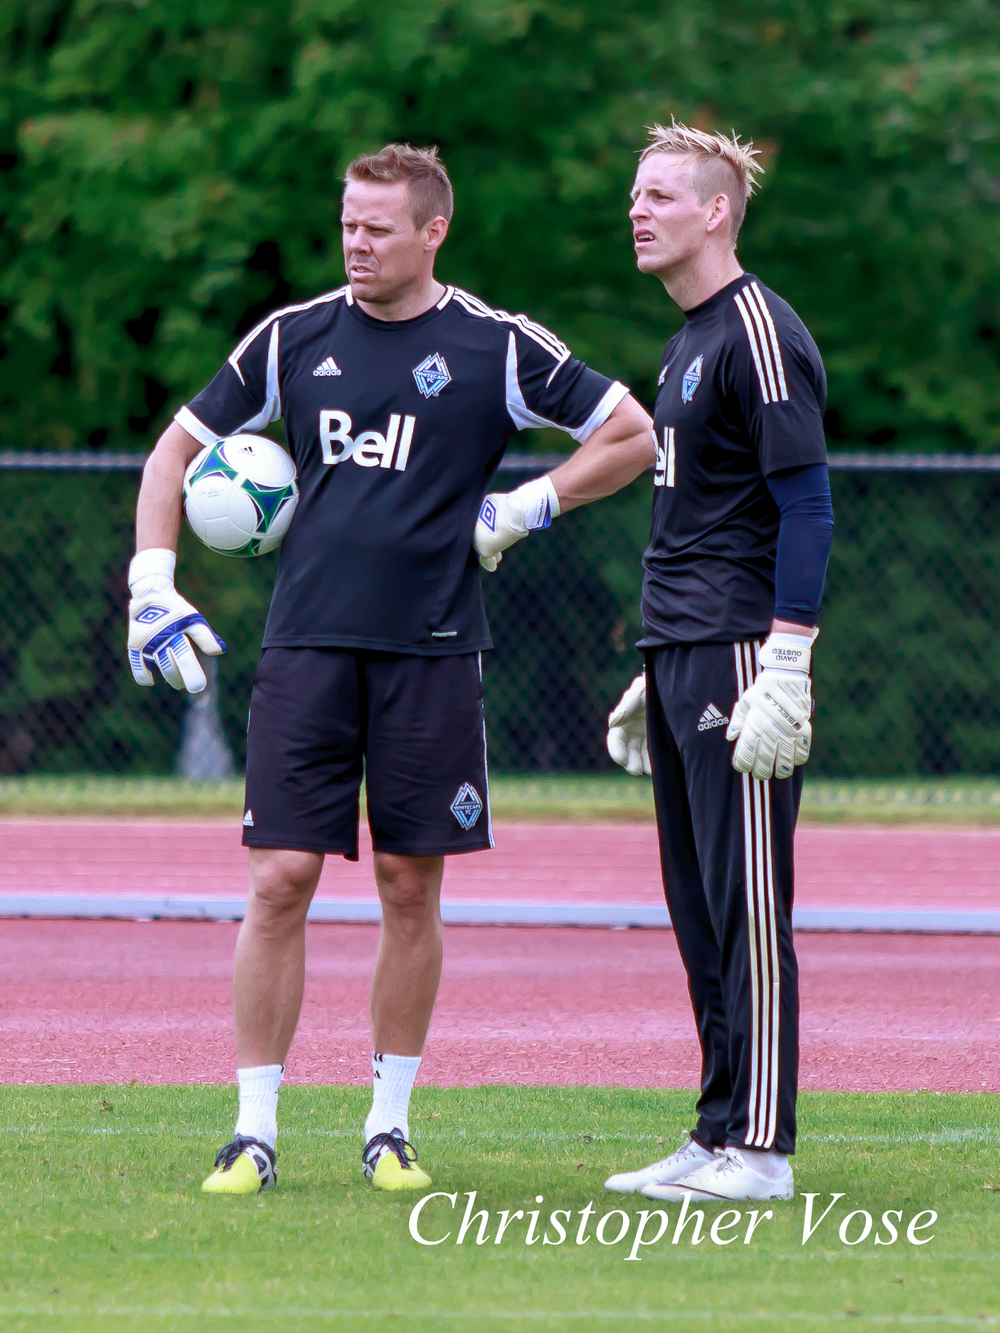 Marius Røvde and David Ousted practice their confused looks at the National Soccer Development Centre on 24 June 2013.